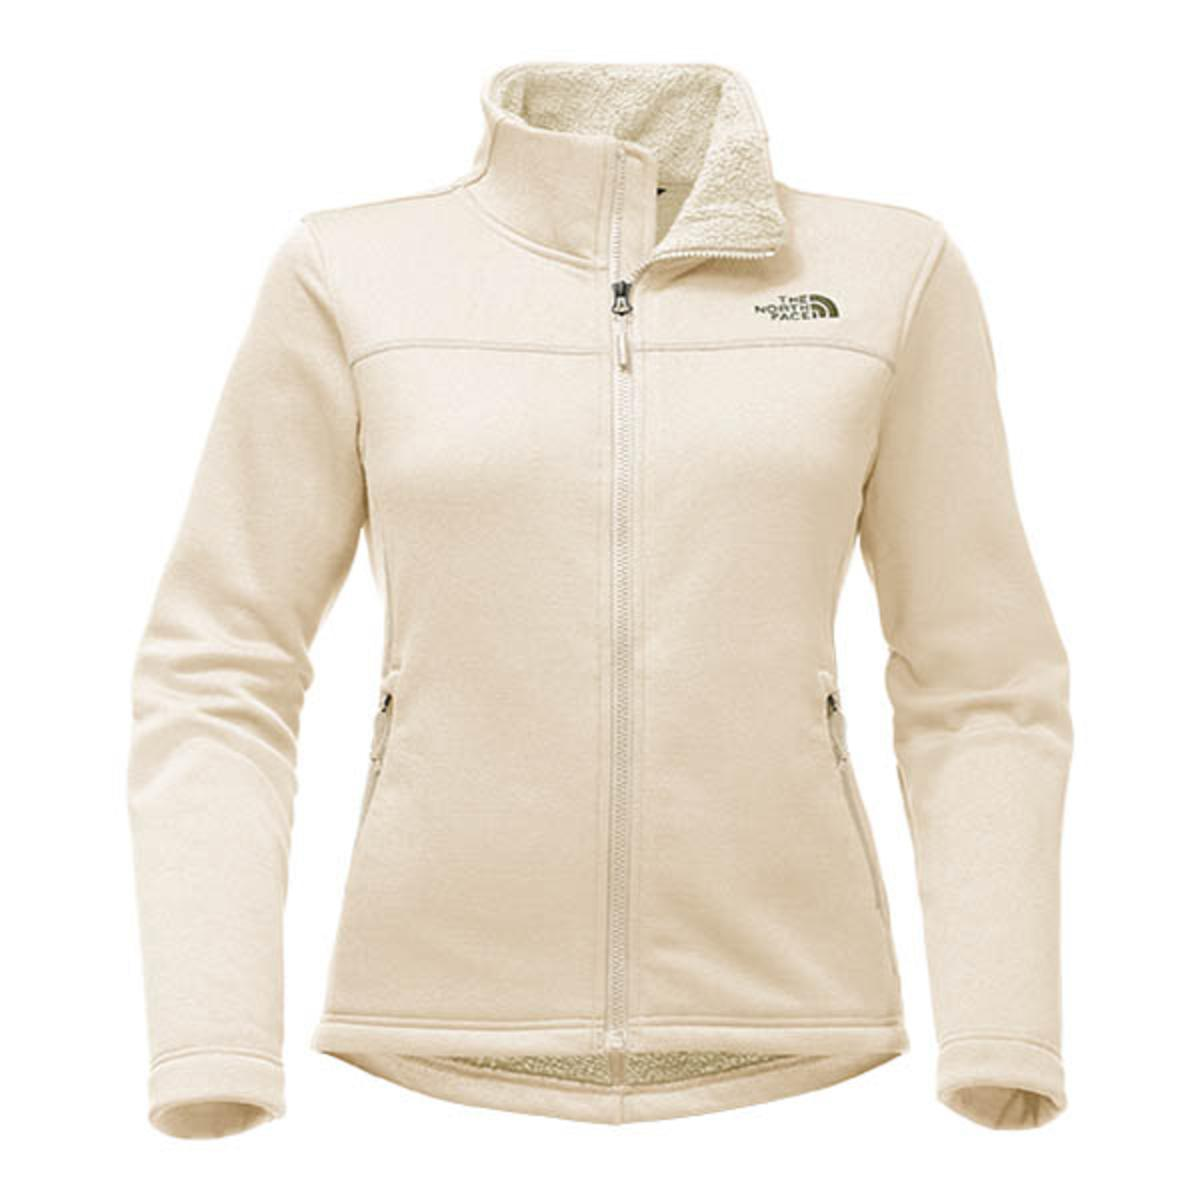 2866ed29c21b The North Face Women s Timber Full Zip - Vintage White - The Warming ...